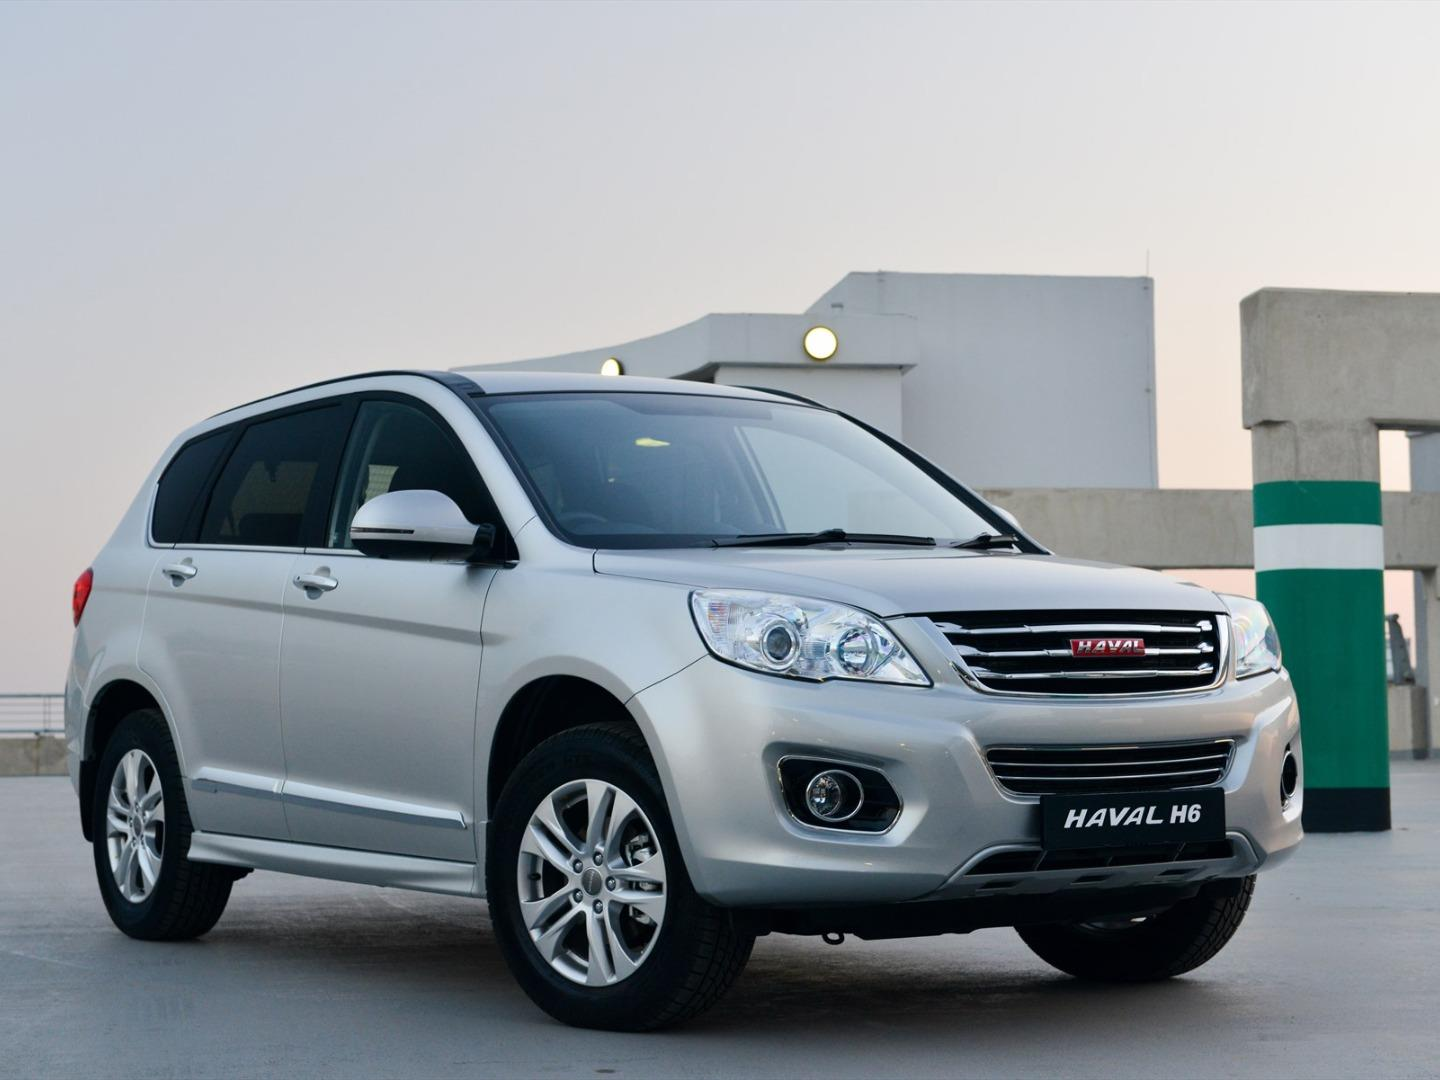 2020 Haval H6 1.5T Luxury- Picture 1